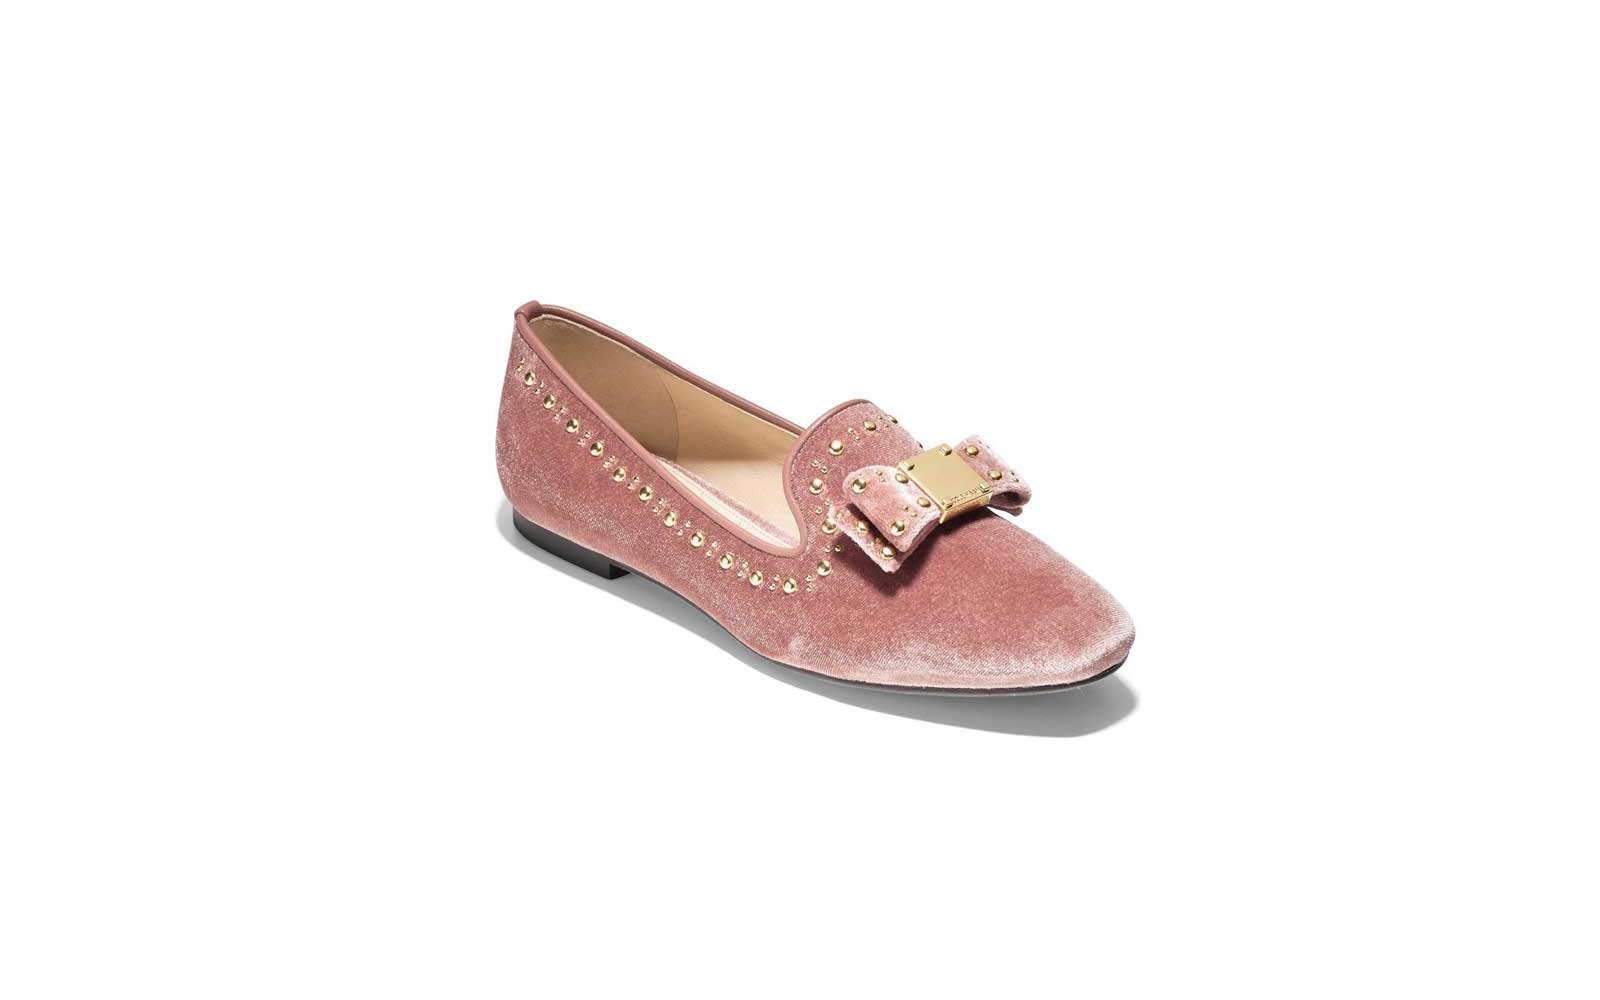 Cole Haan Tali Bow Loafer in Nude Velvet